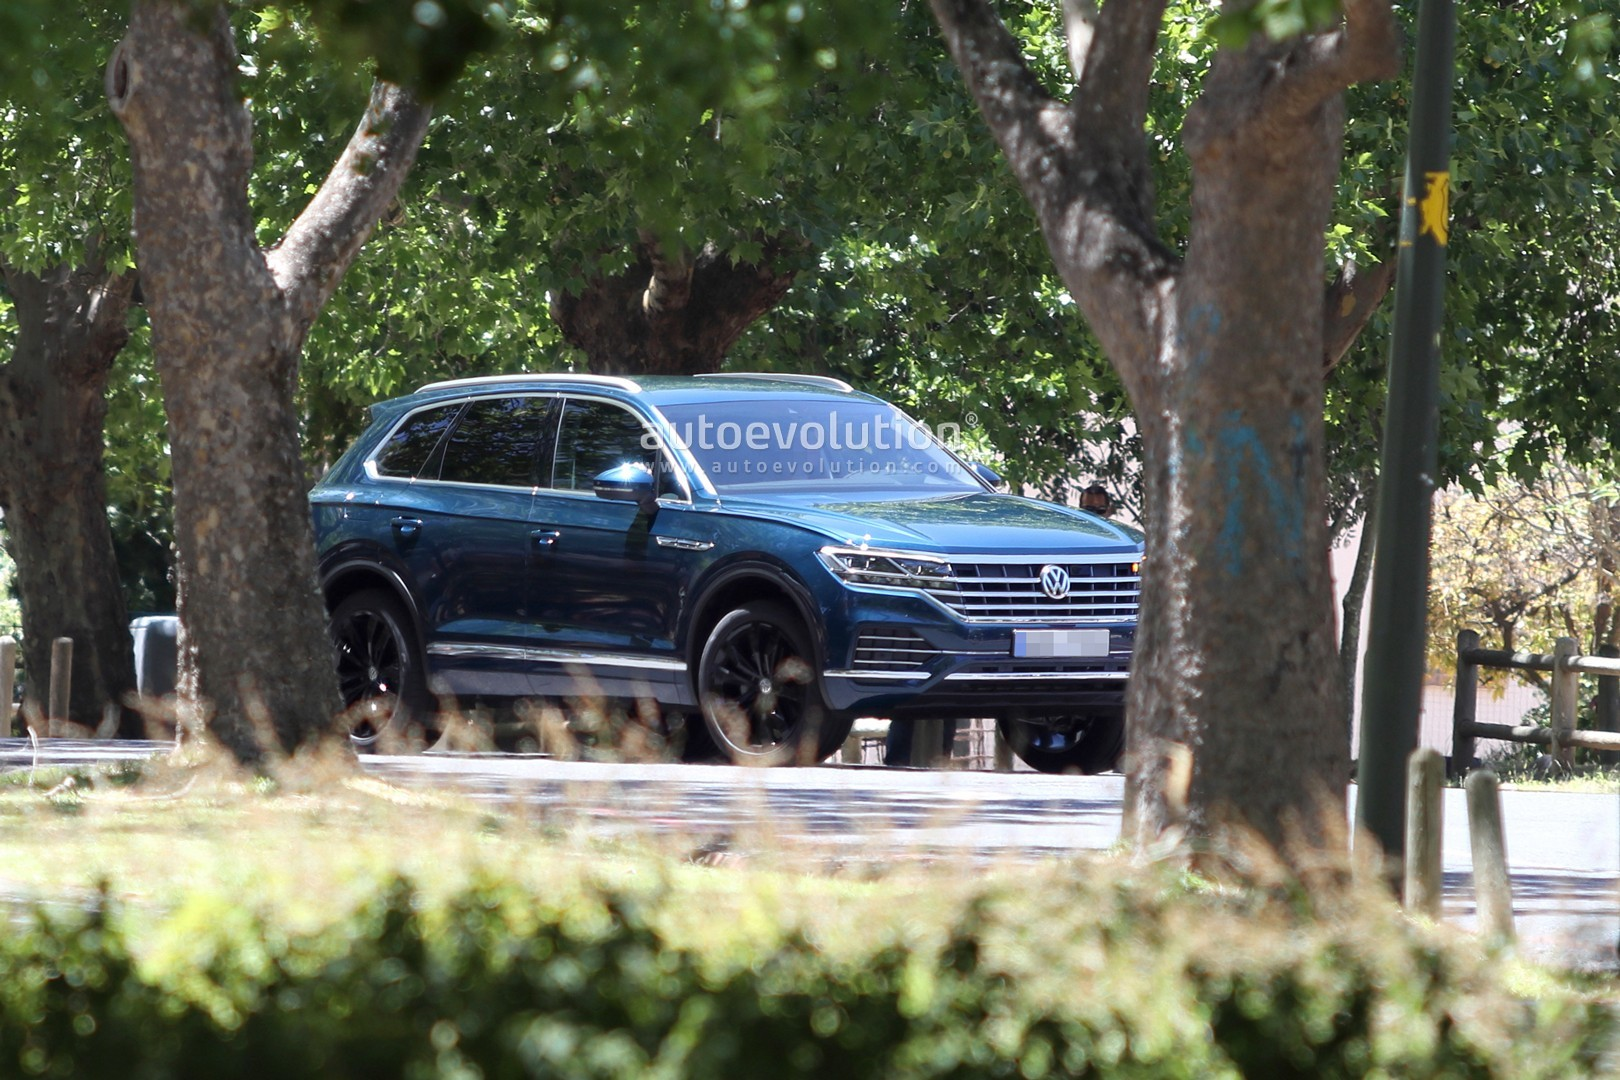 Official Rendering of the All New Volkswagen Touareg - autoevolution